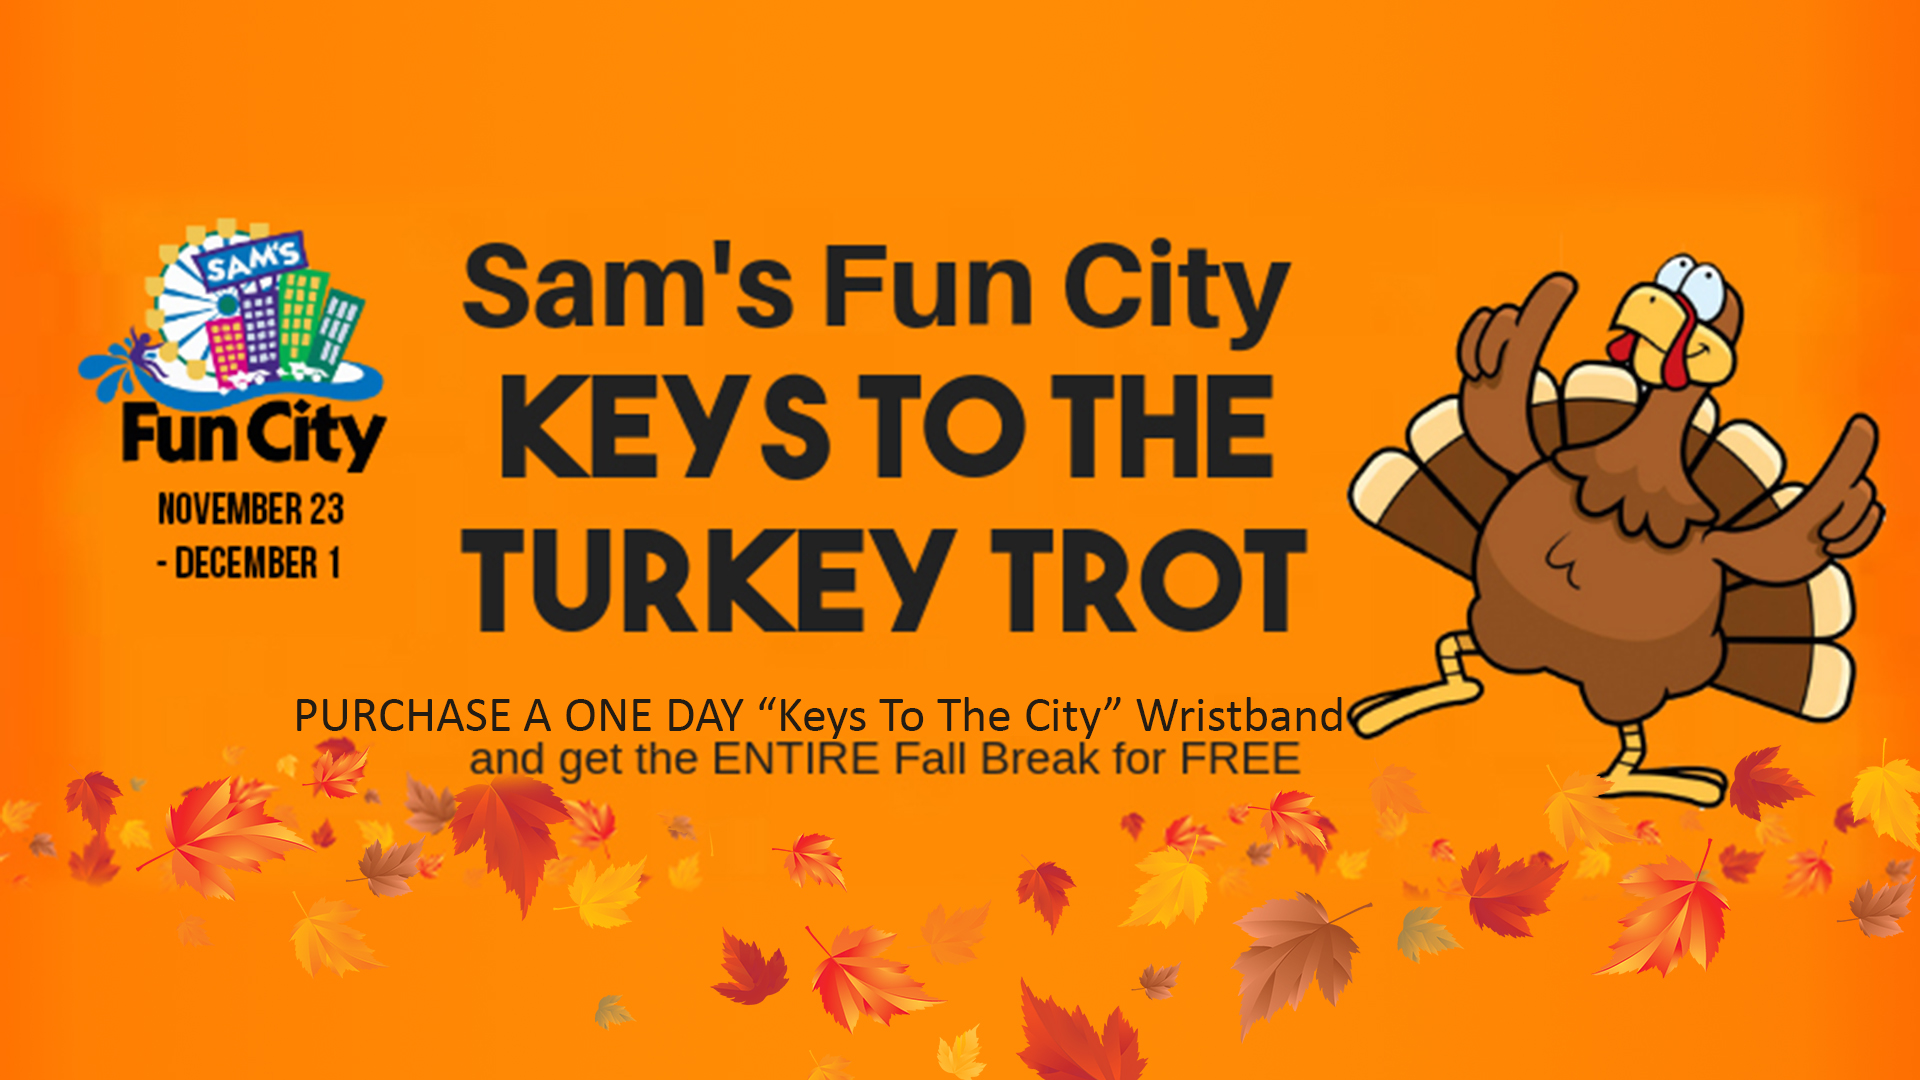 TurkeyTrot_FacebookEvent